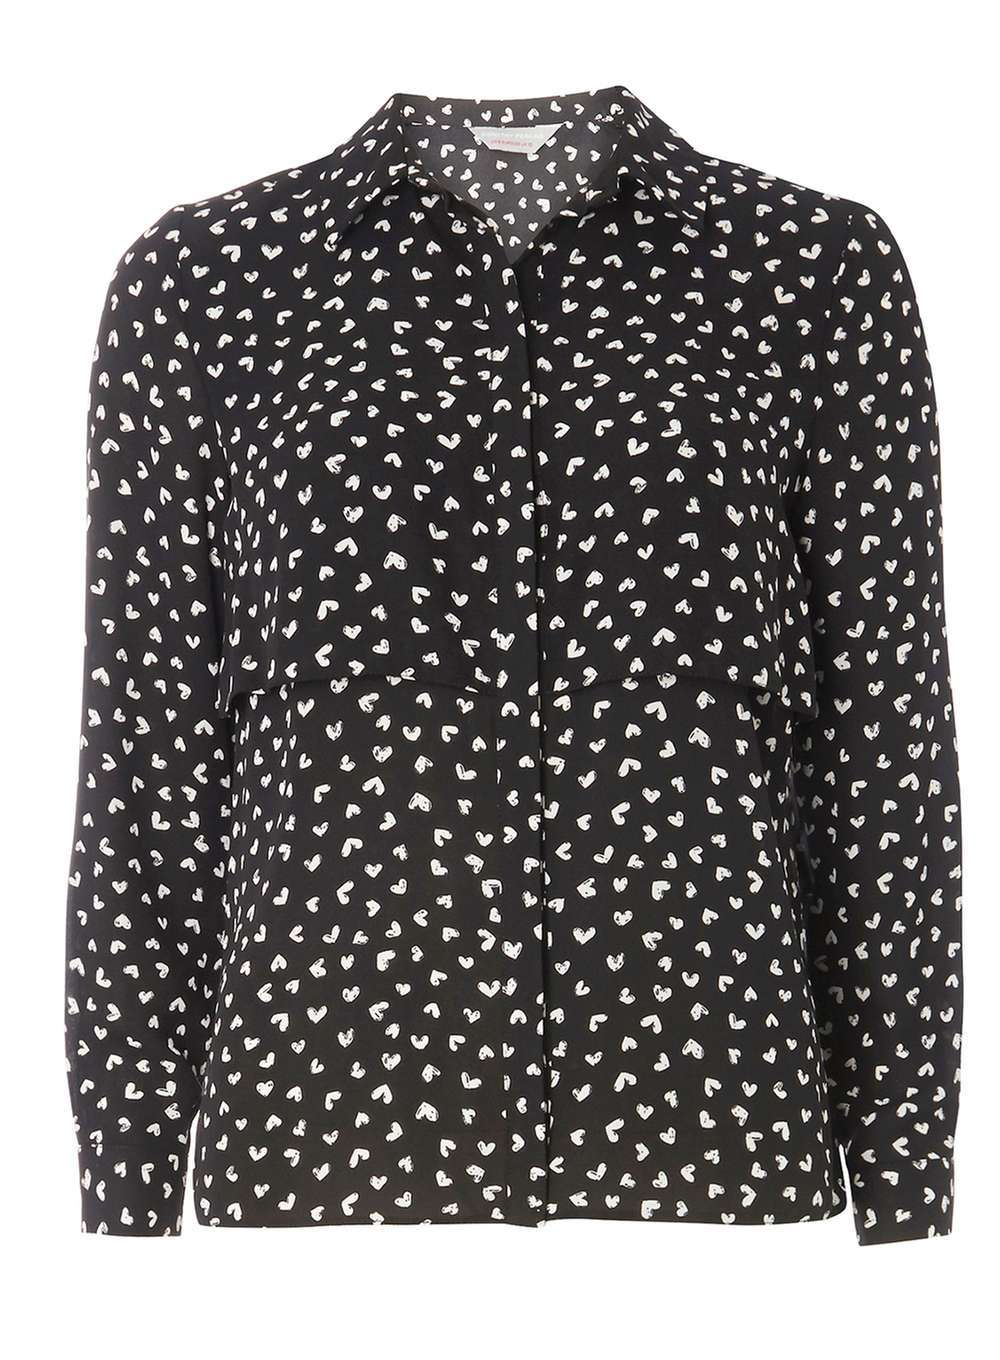 Womens **Petite Black Heart Print Shirt Black - neckline: shirt collar/peter pan/zip with opening; style: shirt; secondary colour: ivory/cream; predominant colour: black; occasions: casual; length: standard; fibres: polyester/polyamide - 100%; fit: body skimming; sleeve length: long sleeve; sleeve style: standard; texture group: sheer fabrics/chiffon/organza etc.; pattern type: fabric; pattern: patterned/print; multicoloured: multicoloured; season: a/w 2016; wardrobe: highlight